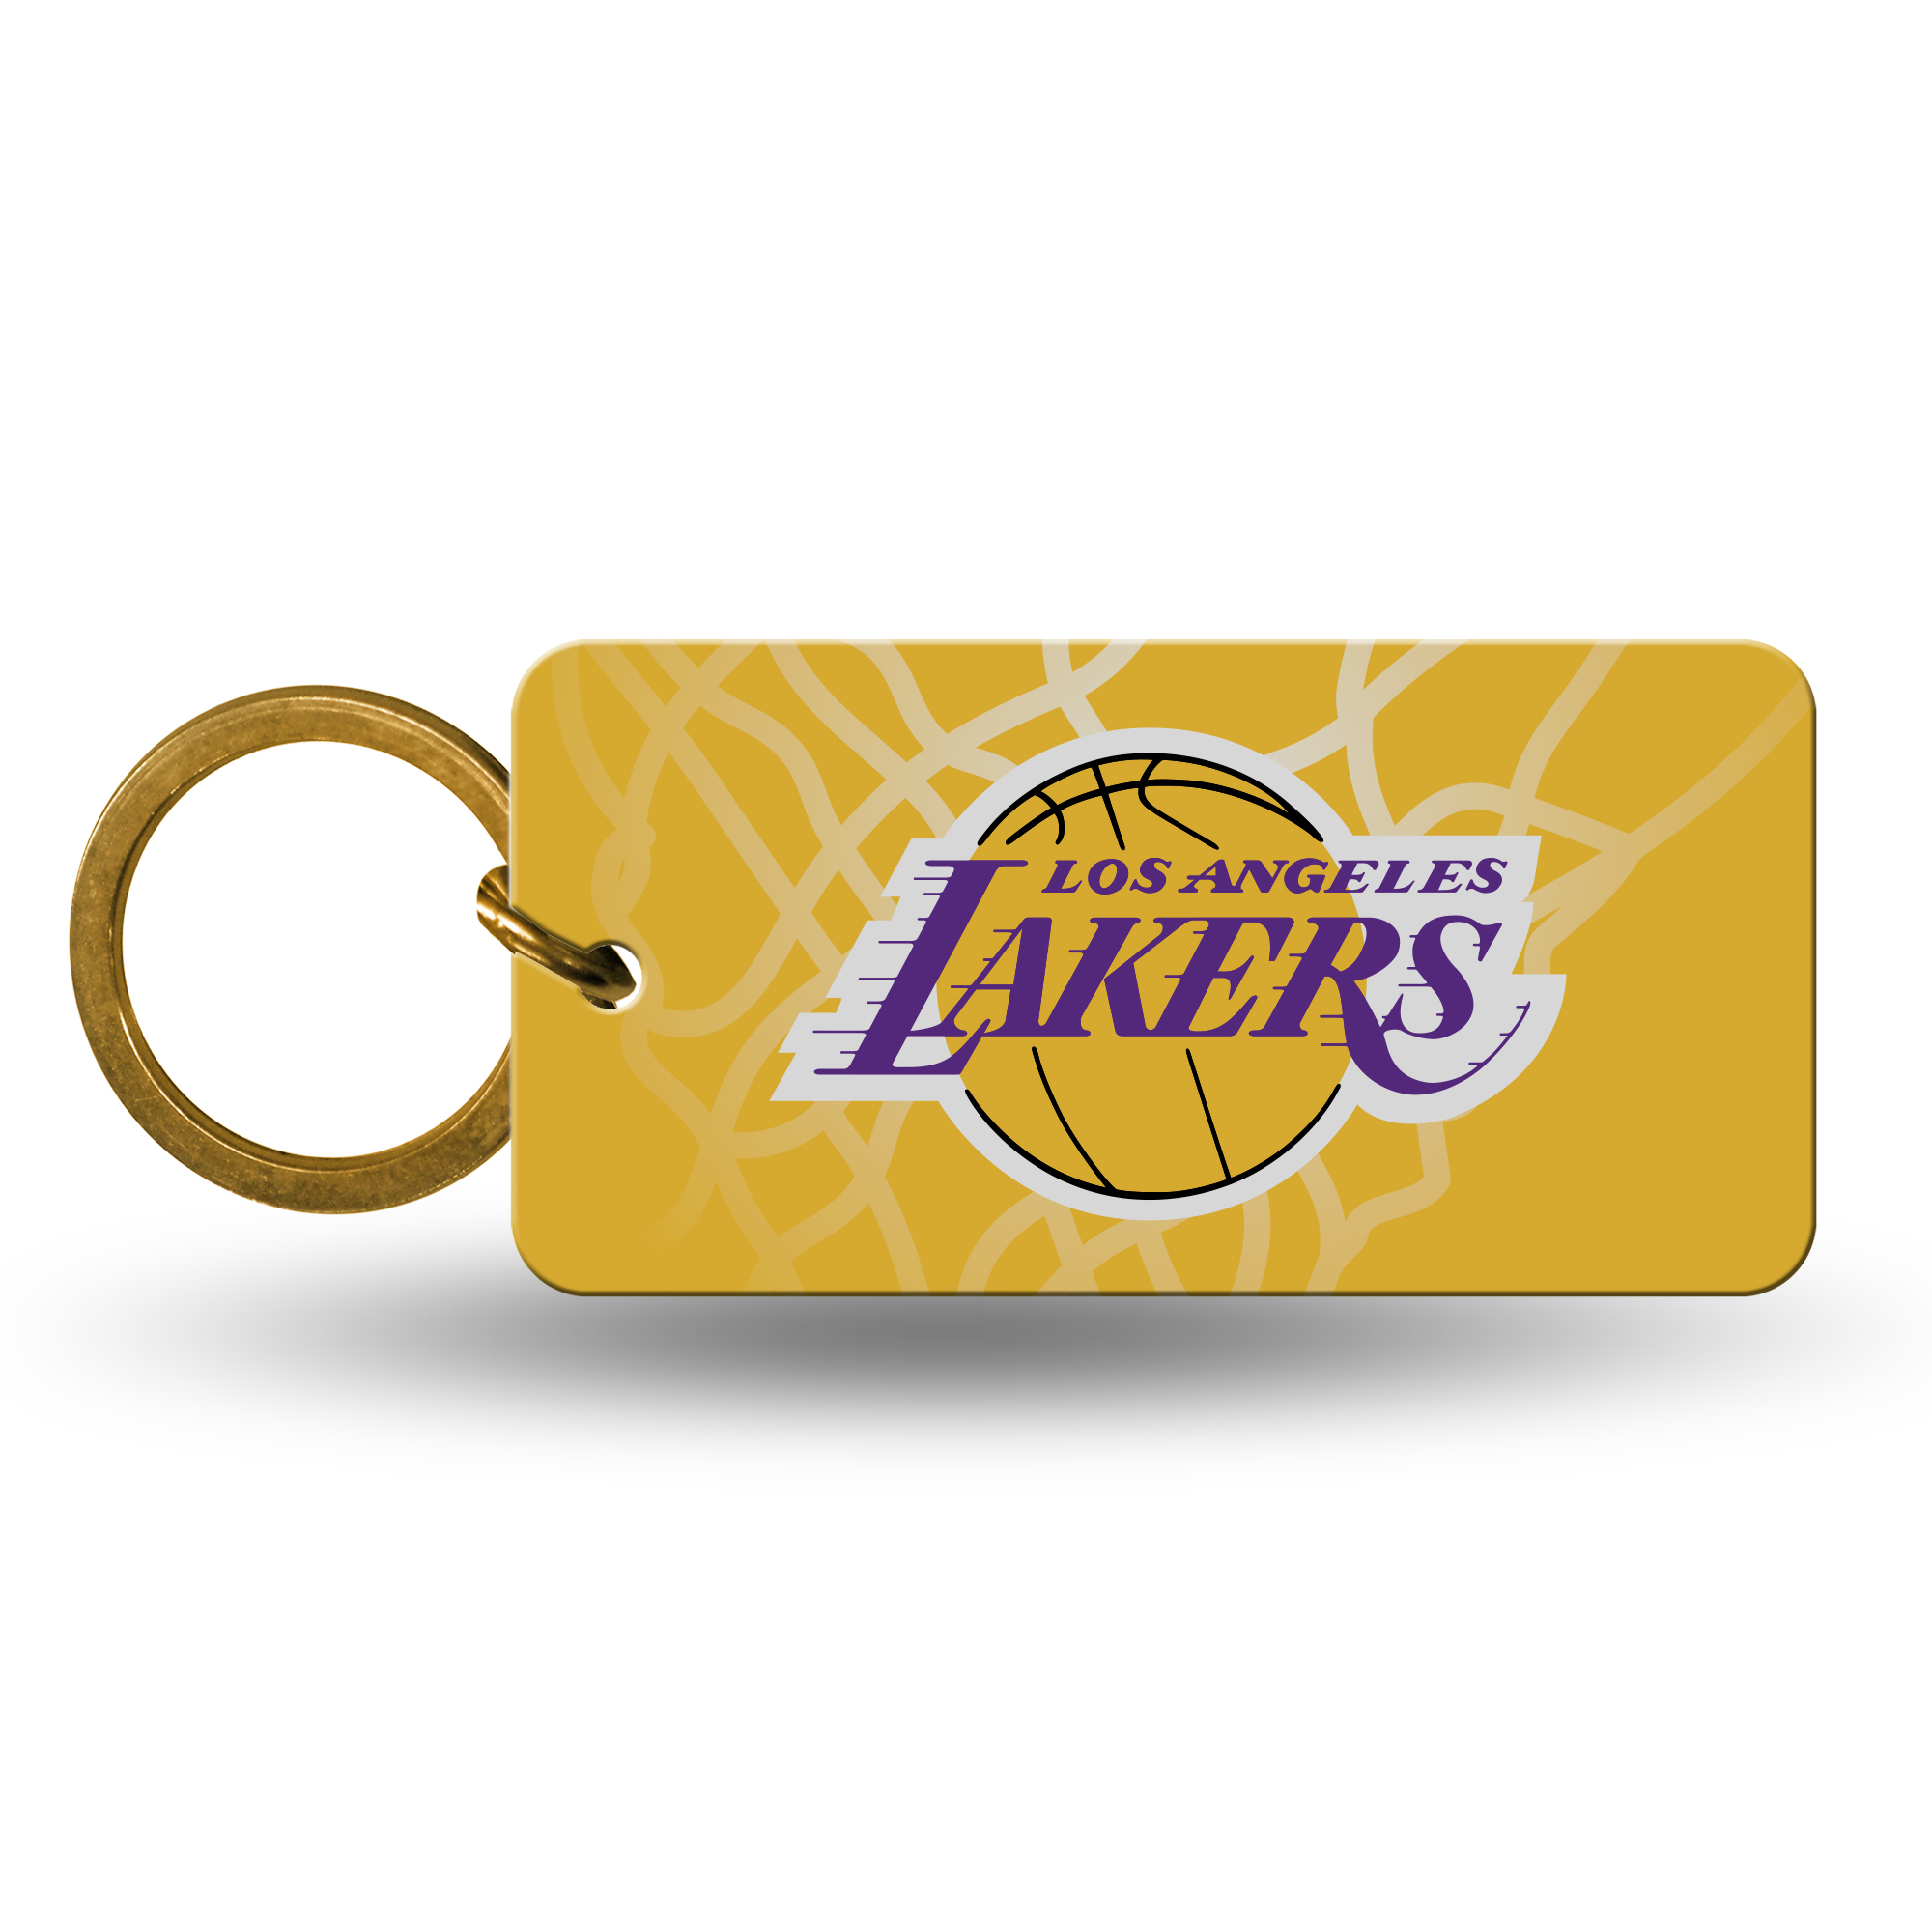 Los Angeles Lakers Official NBA 2 inch  Crystal View Key Chain Keychain by Rico